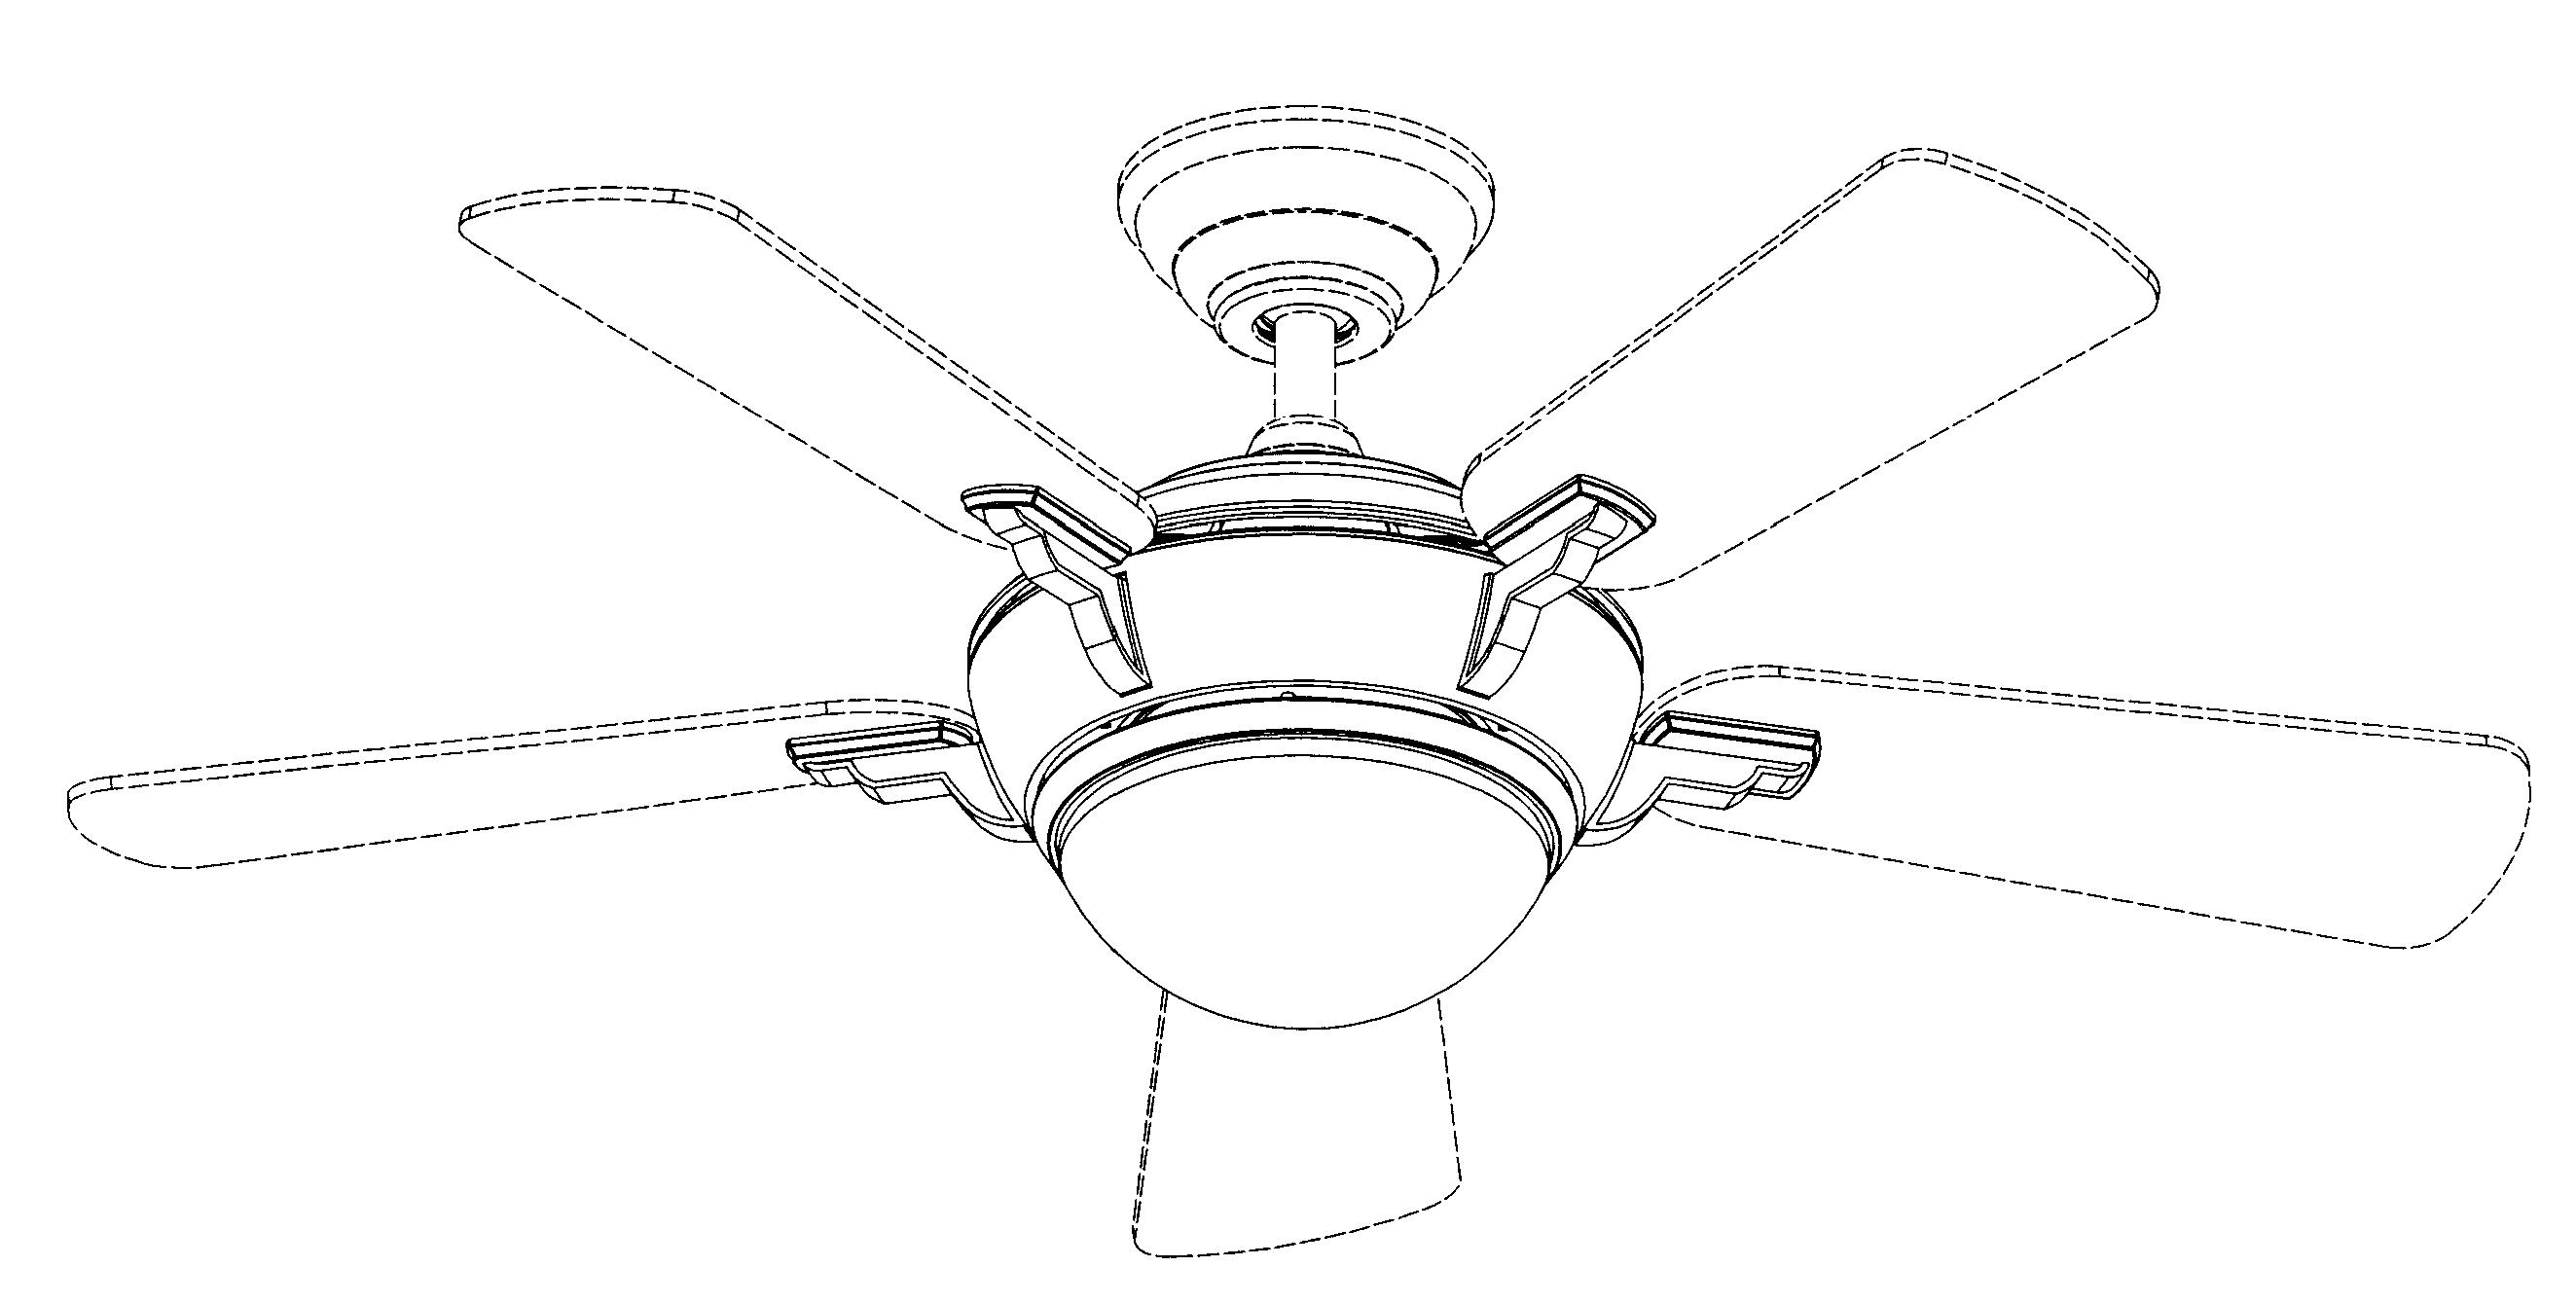 Patent USD607096 Combined Ceiling Fan And Light Fixture